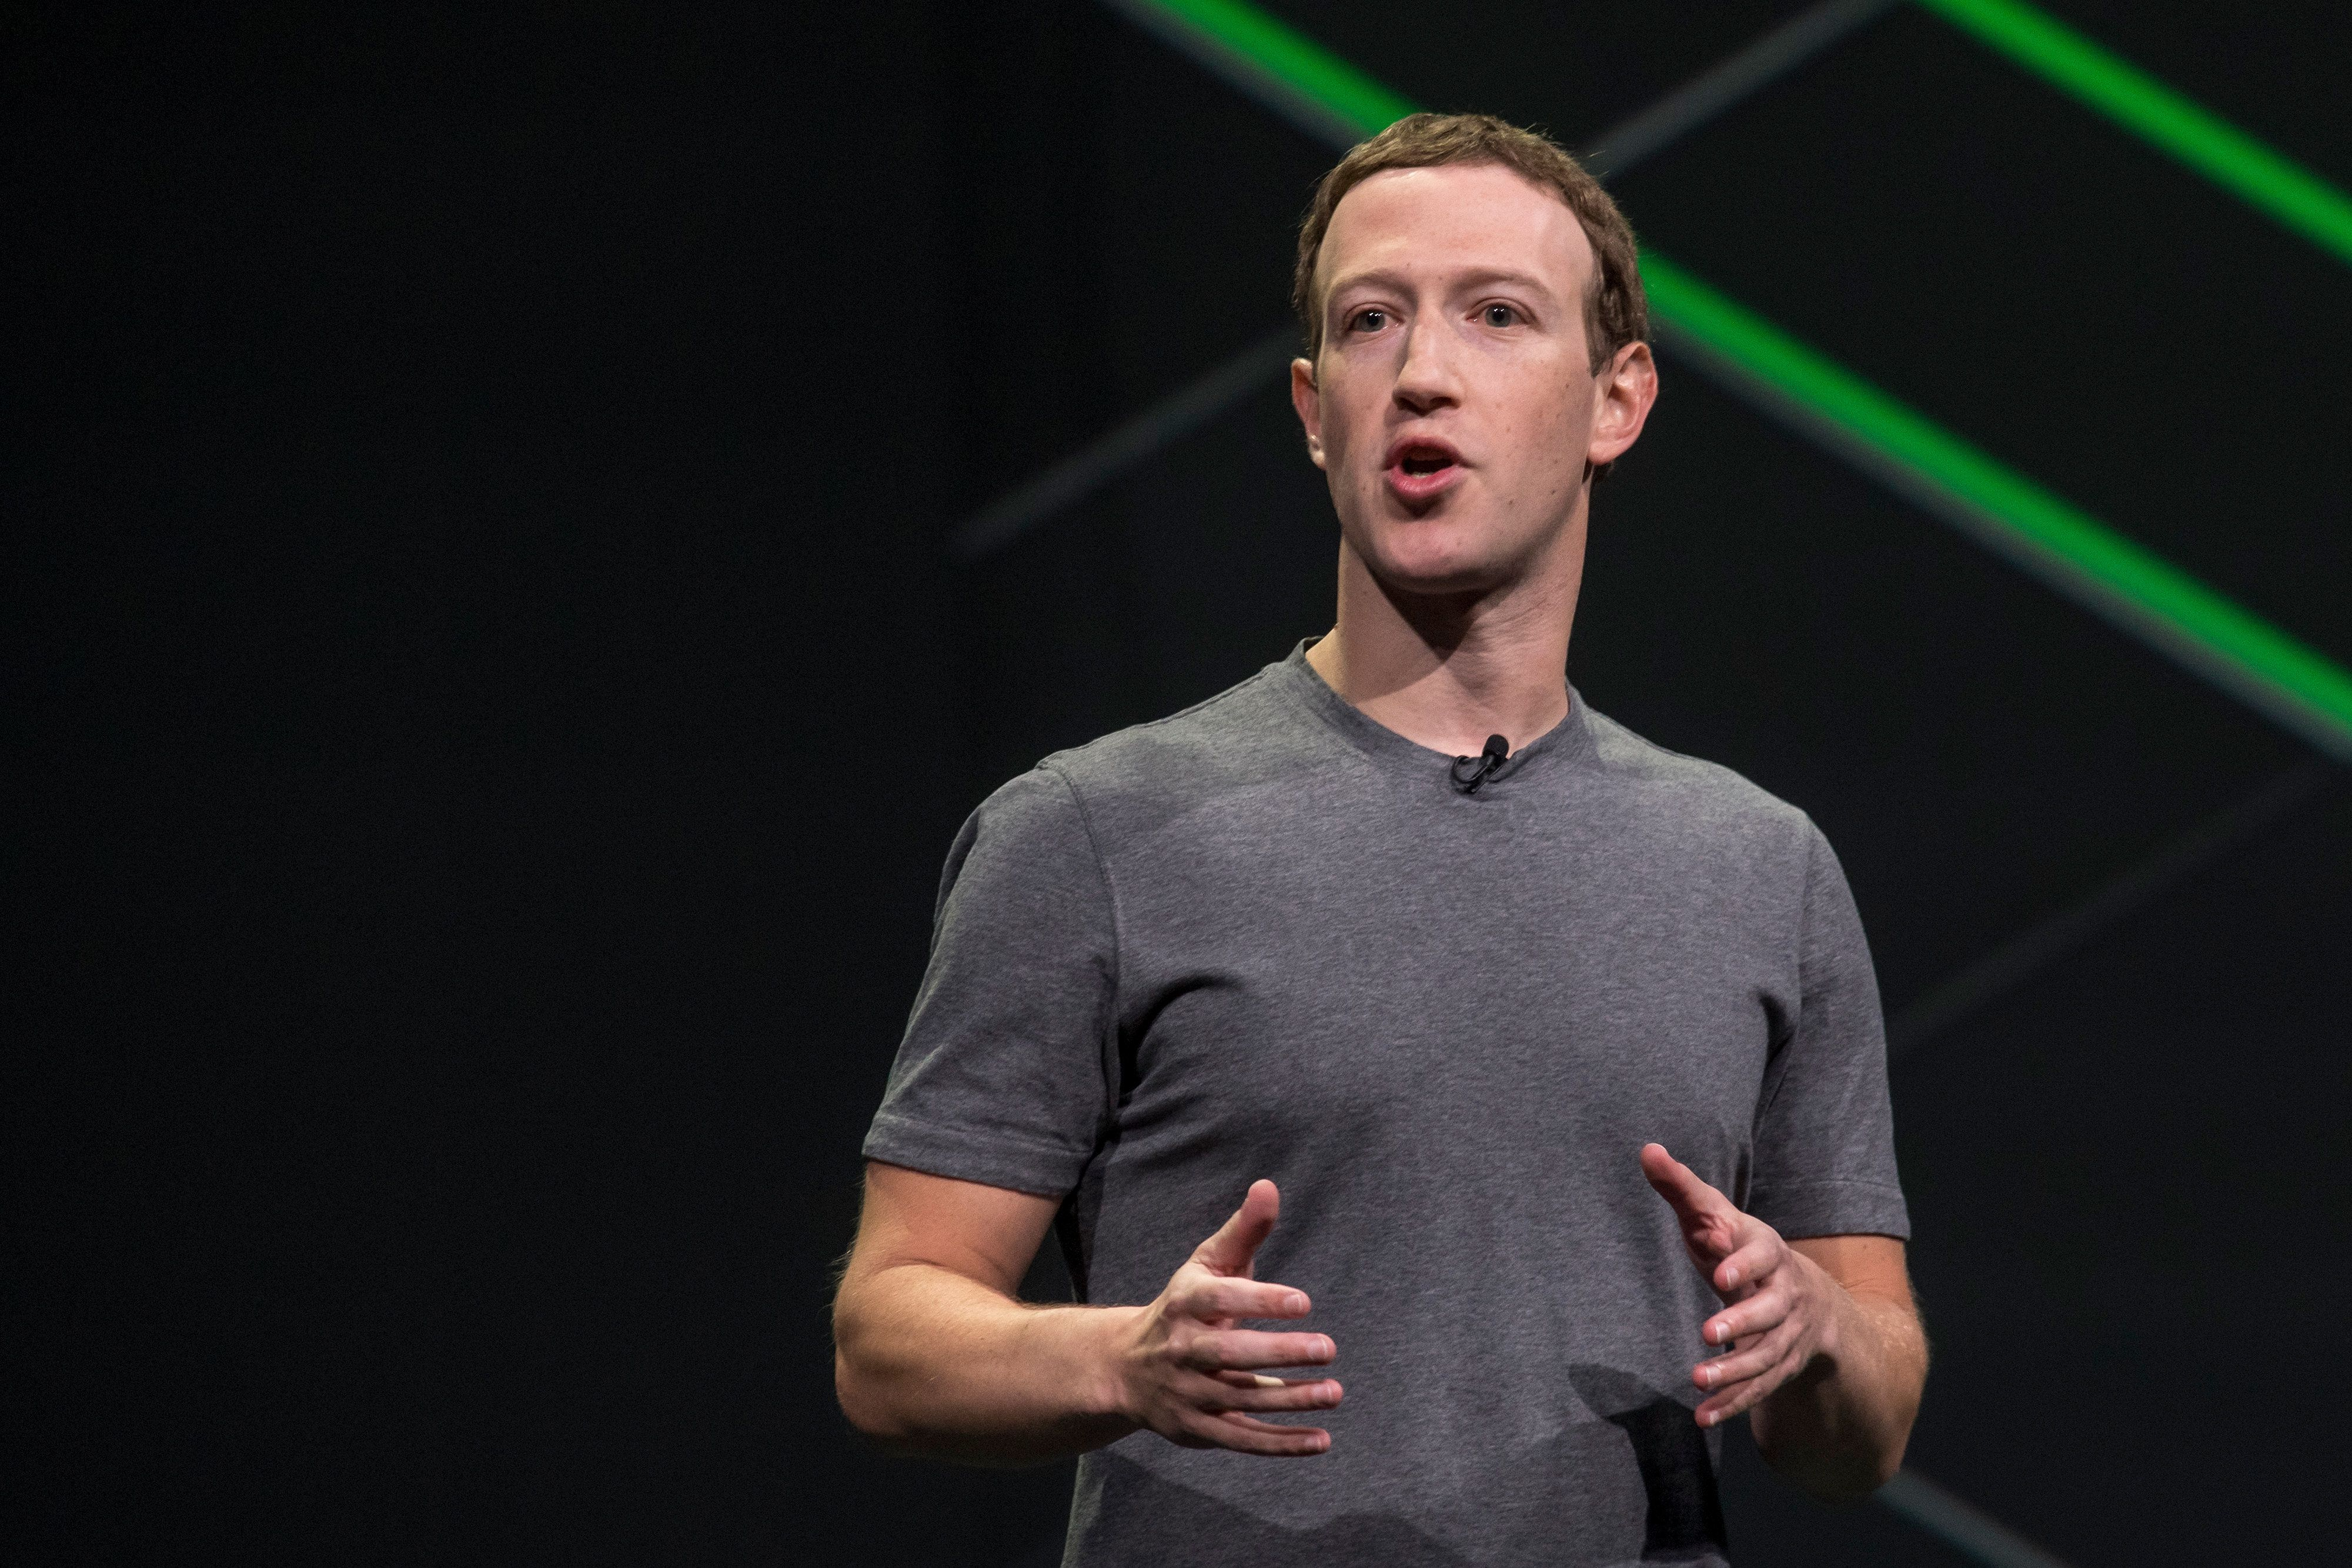 Facebook To Make Huge News Feed Changes Announces